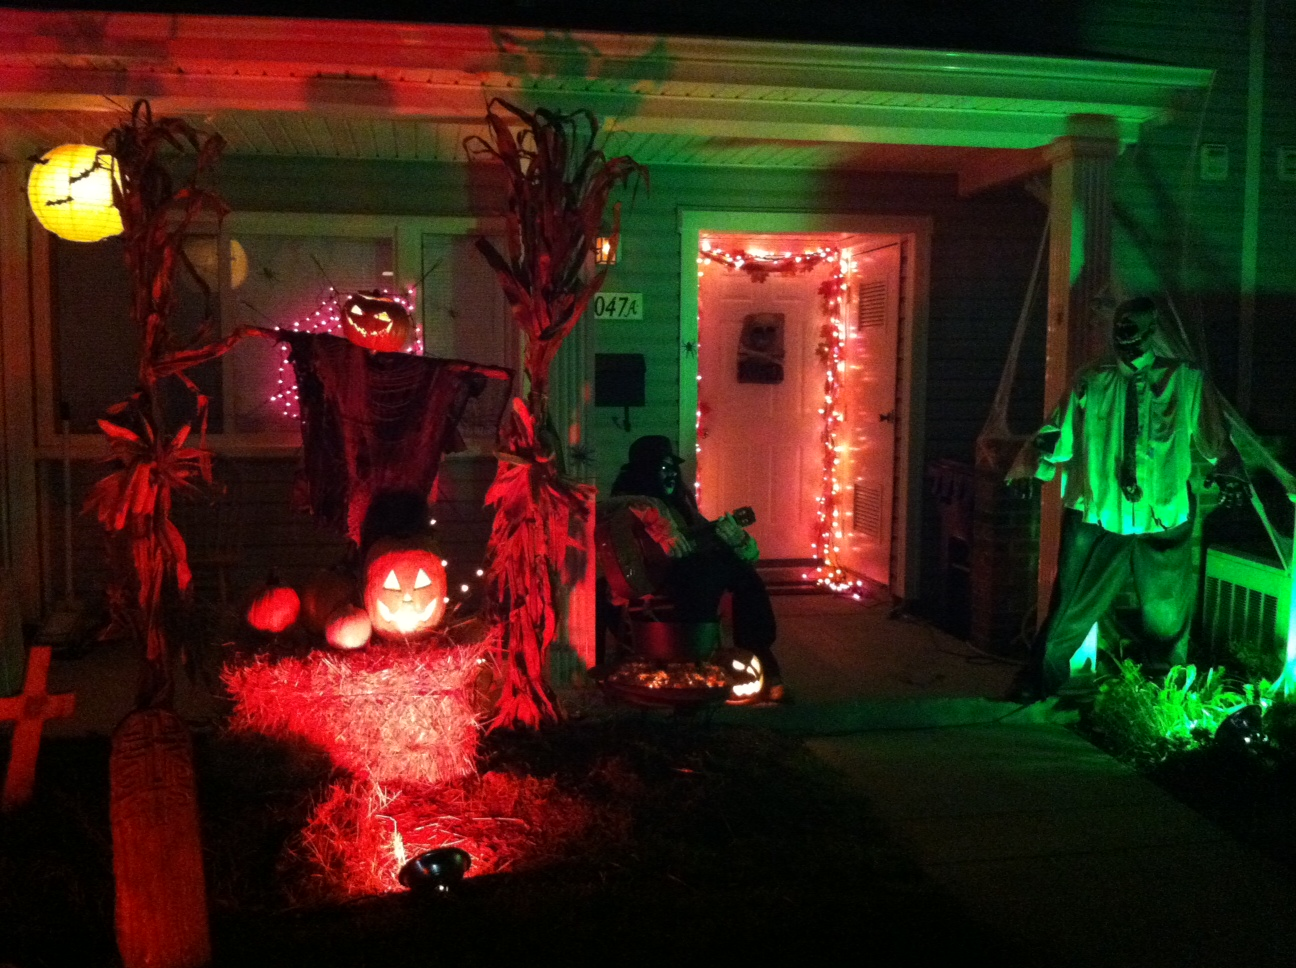 Terrace Halloween Decor With Jack O Lantern Details And Spooky Lighting Ideas Also Graveyard Background (Image 9 of 10)